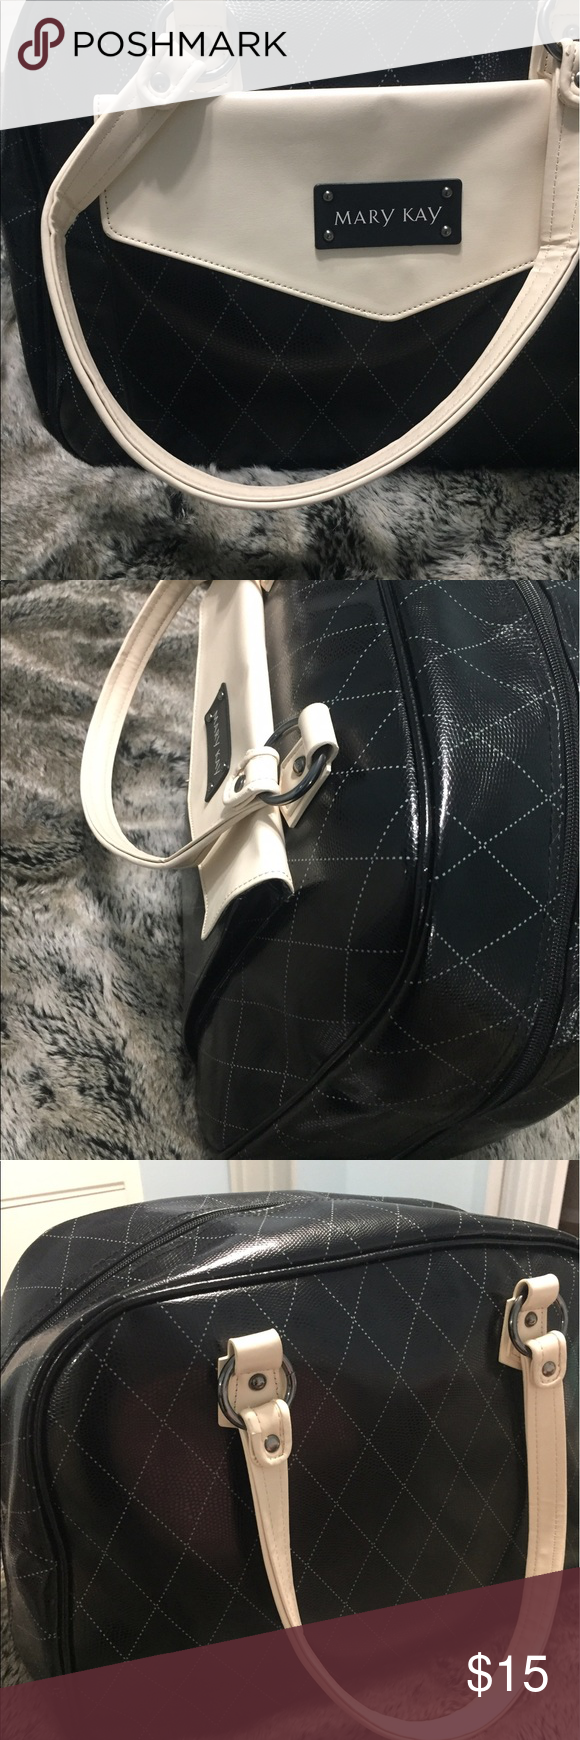 Mary Kay travel bag. Black with dotted line criss cross pattern. Lots of pockets and only used once. Great to travel with! Mary Kay Bags Travel Bags